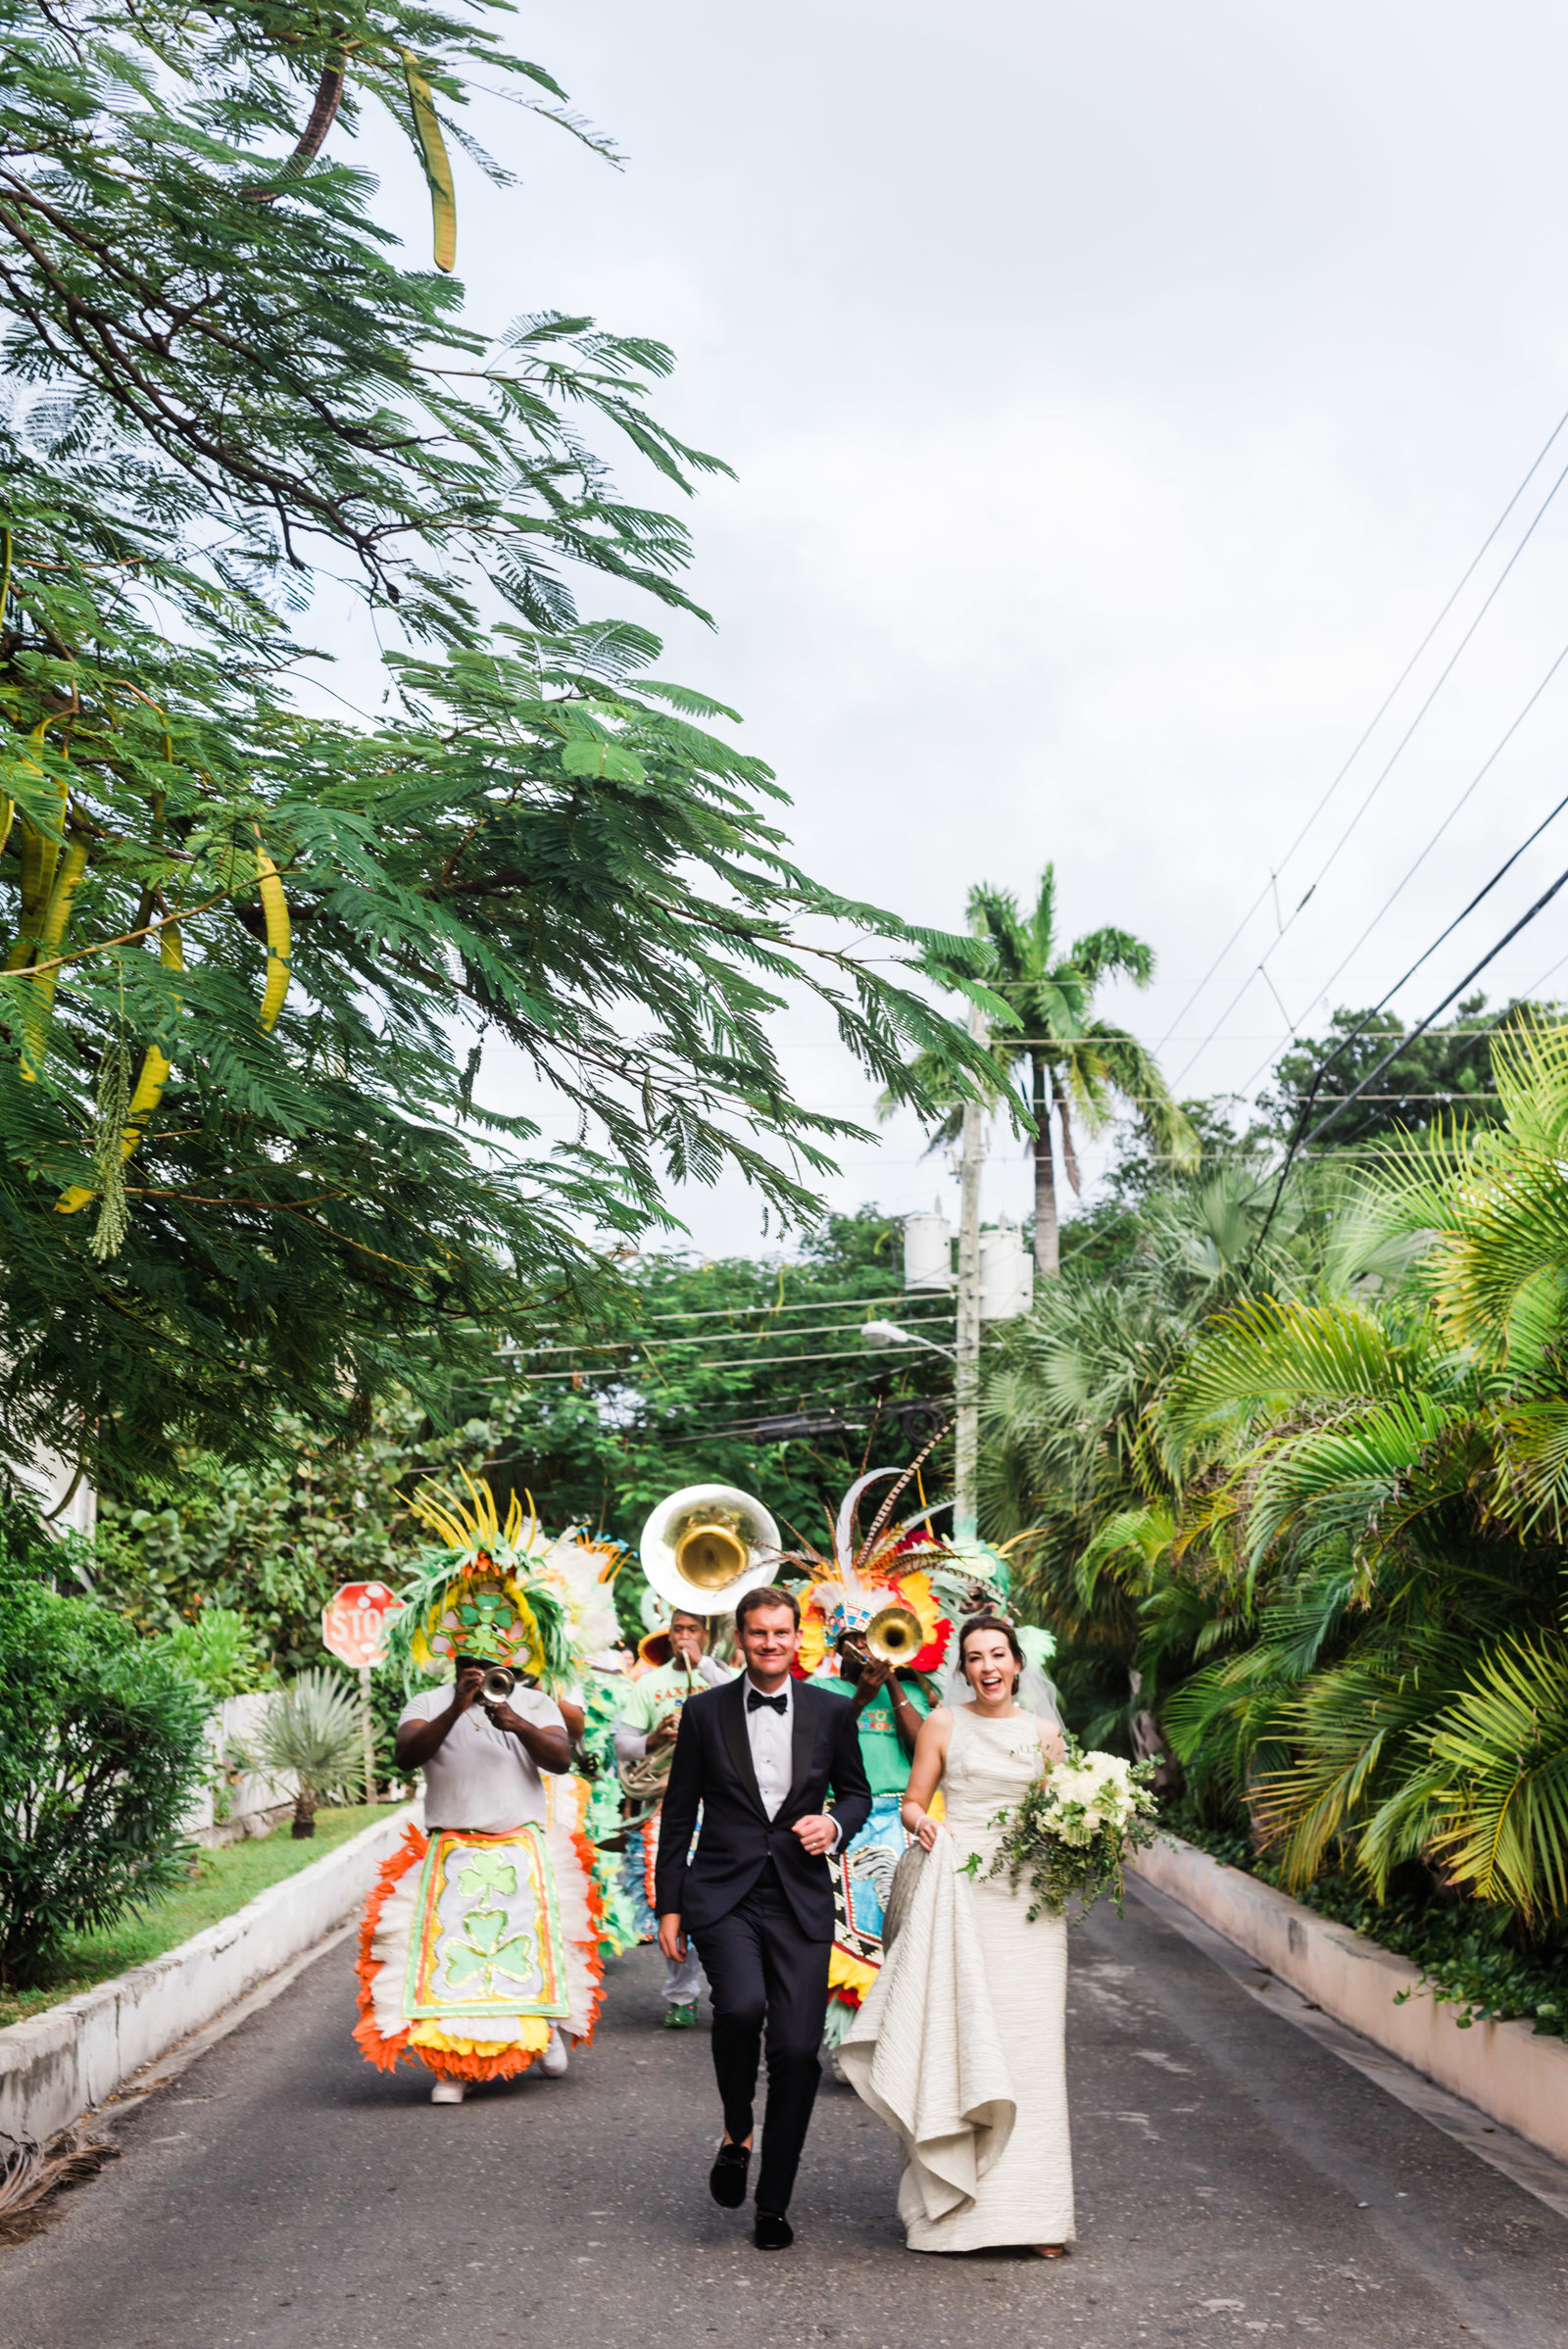 20171111-Pura-Soul-Photoharbour-island-bahamas-willis-wedding-392